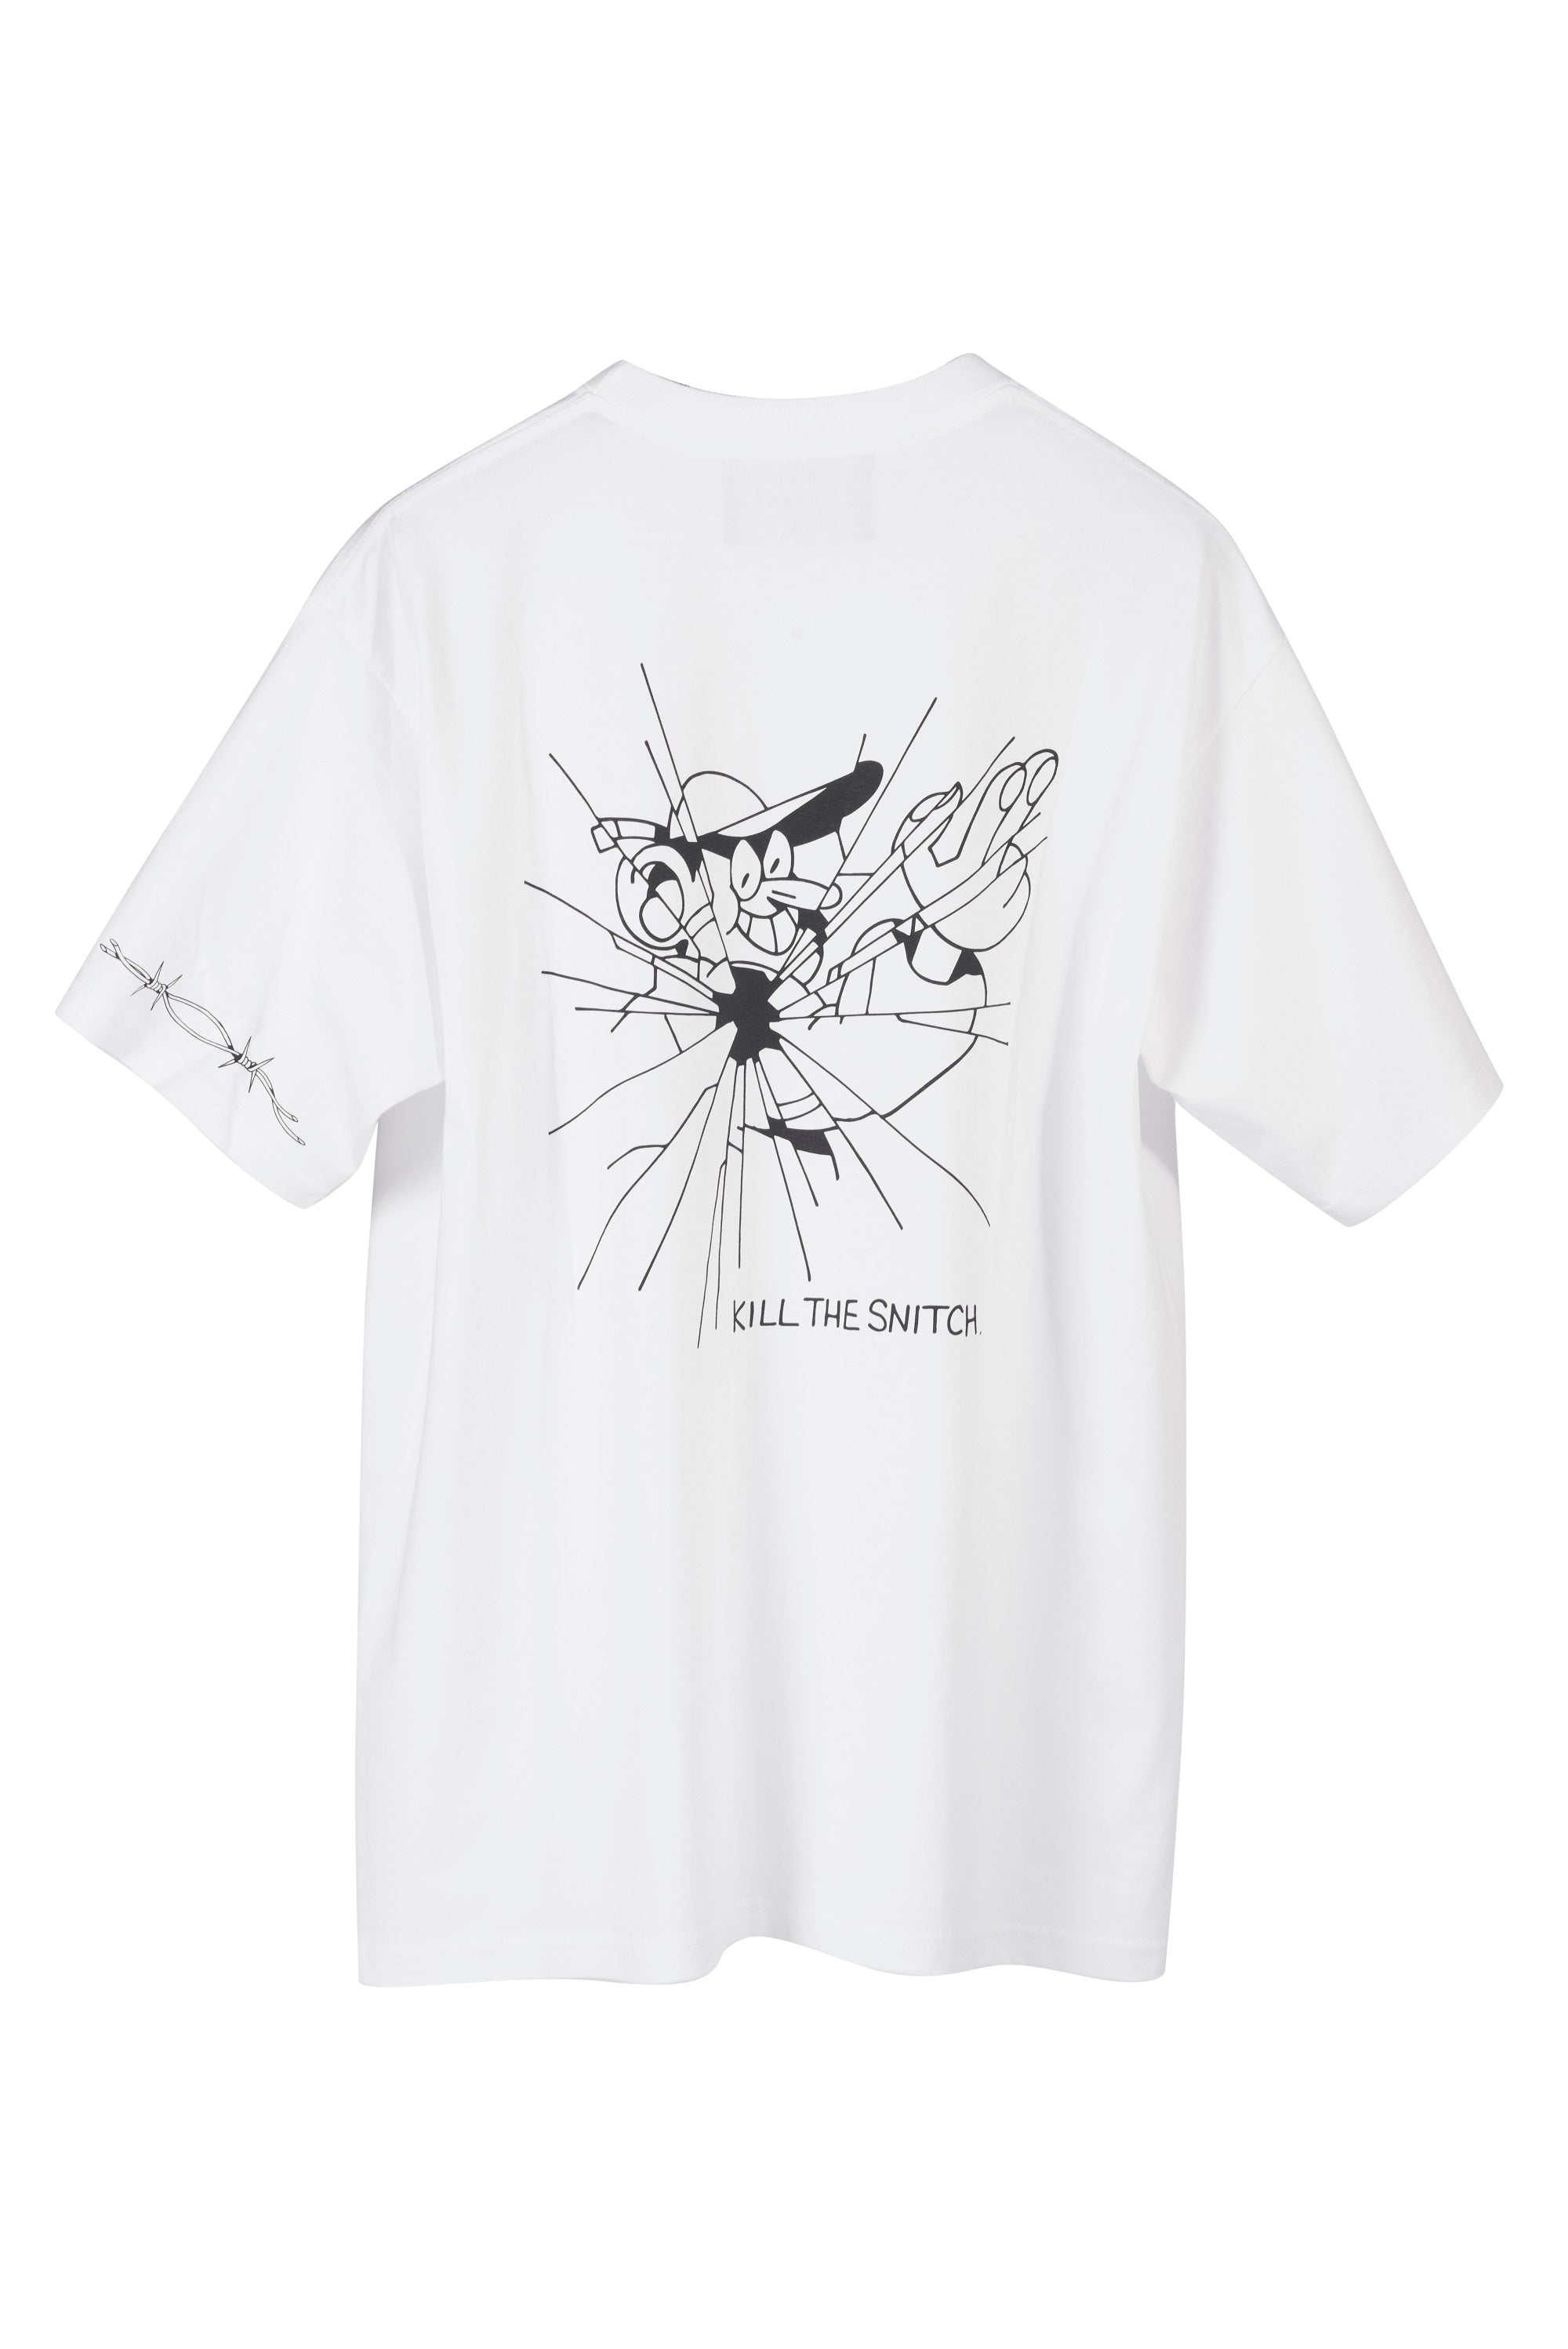 "Lugosis T-Shirt ""Kill The Snitch"" - White"